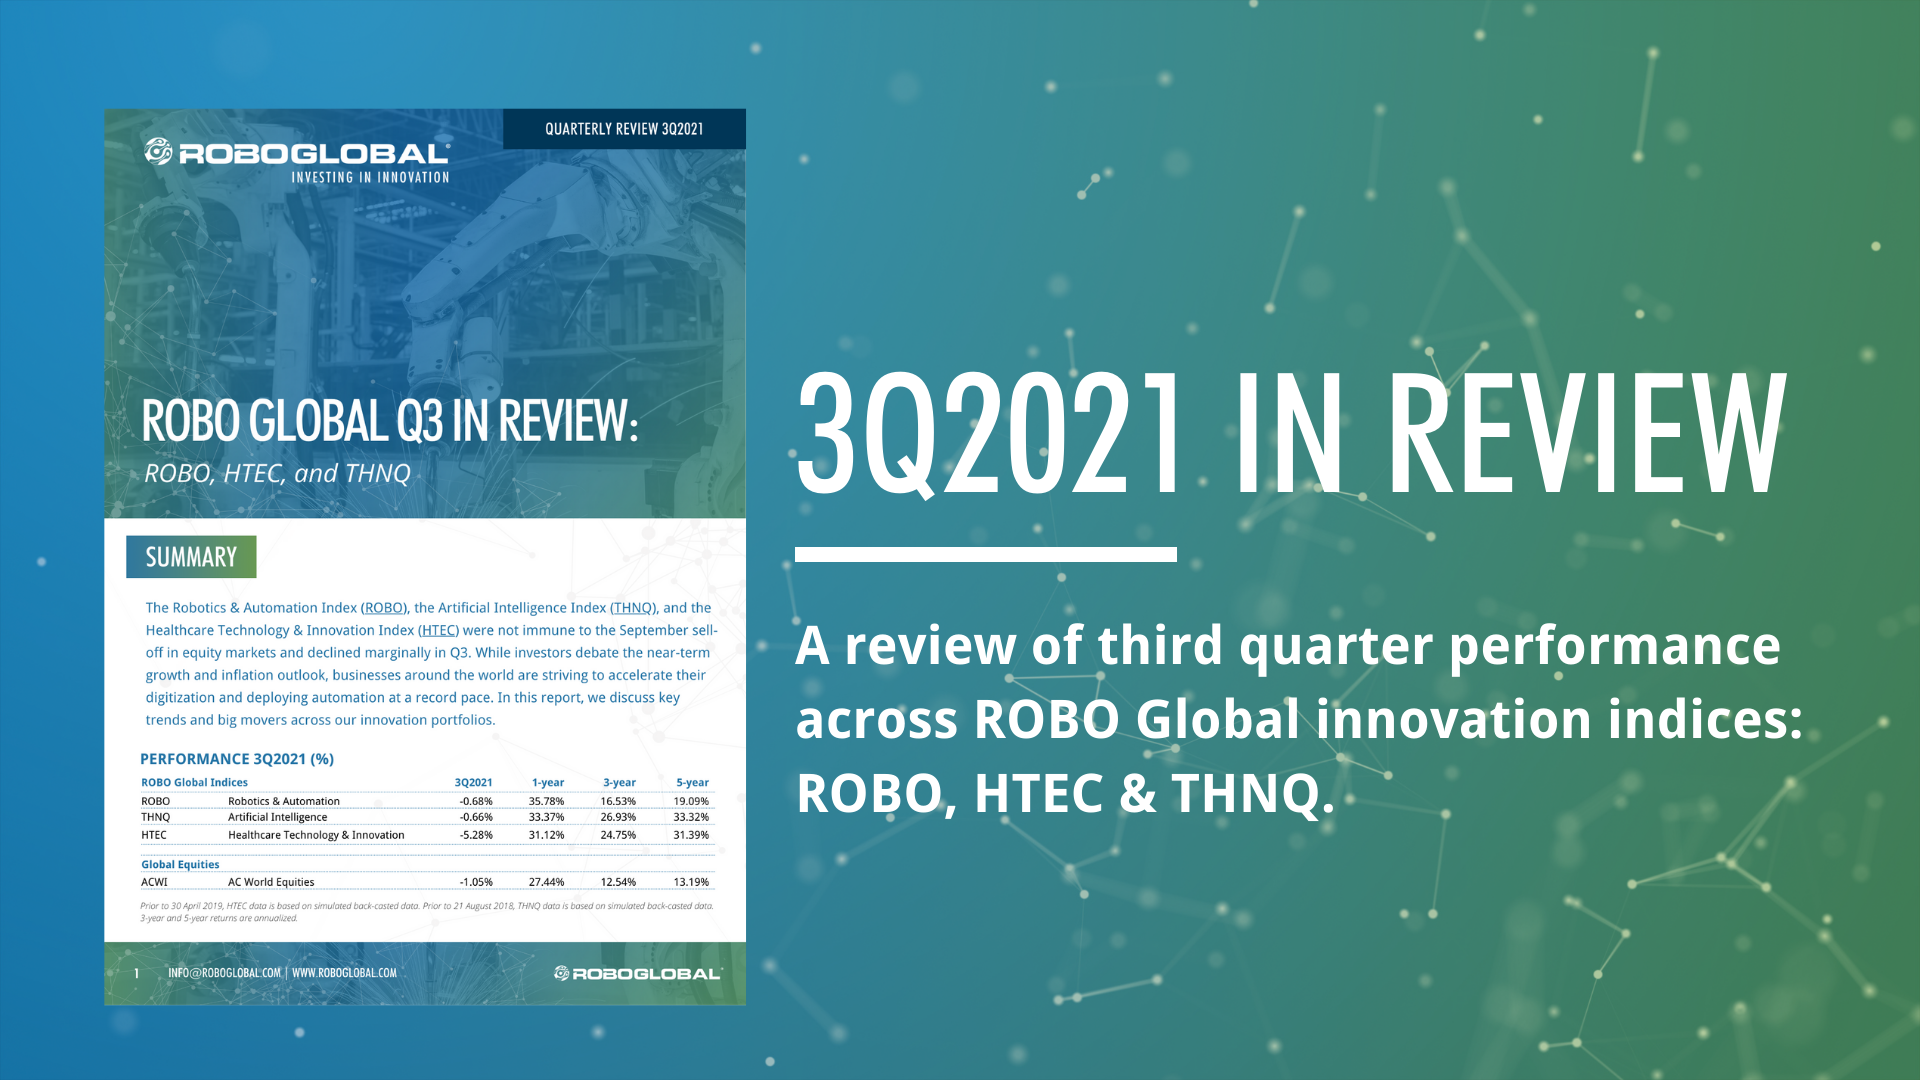 Q3 2021 In Review: ROBO Global Innovation Indices